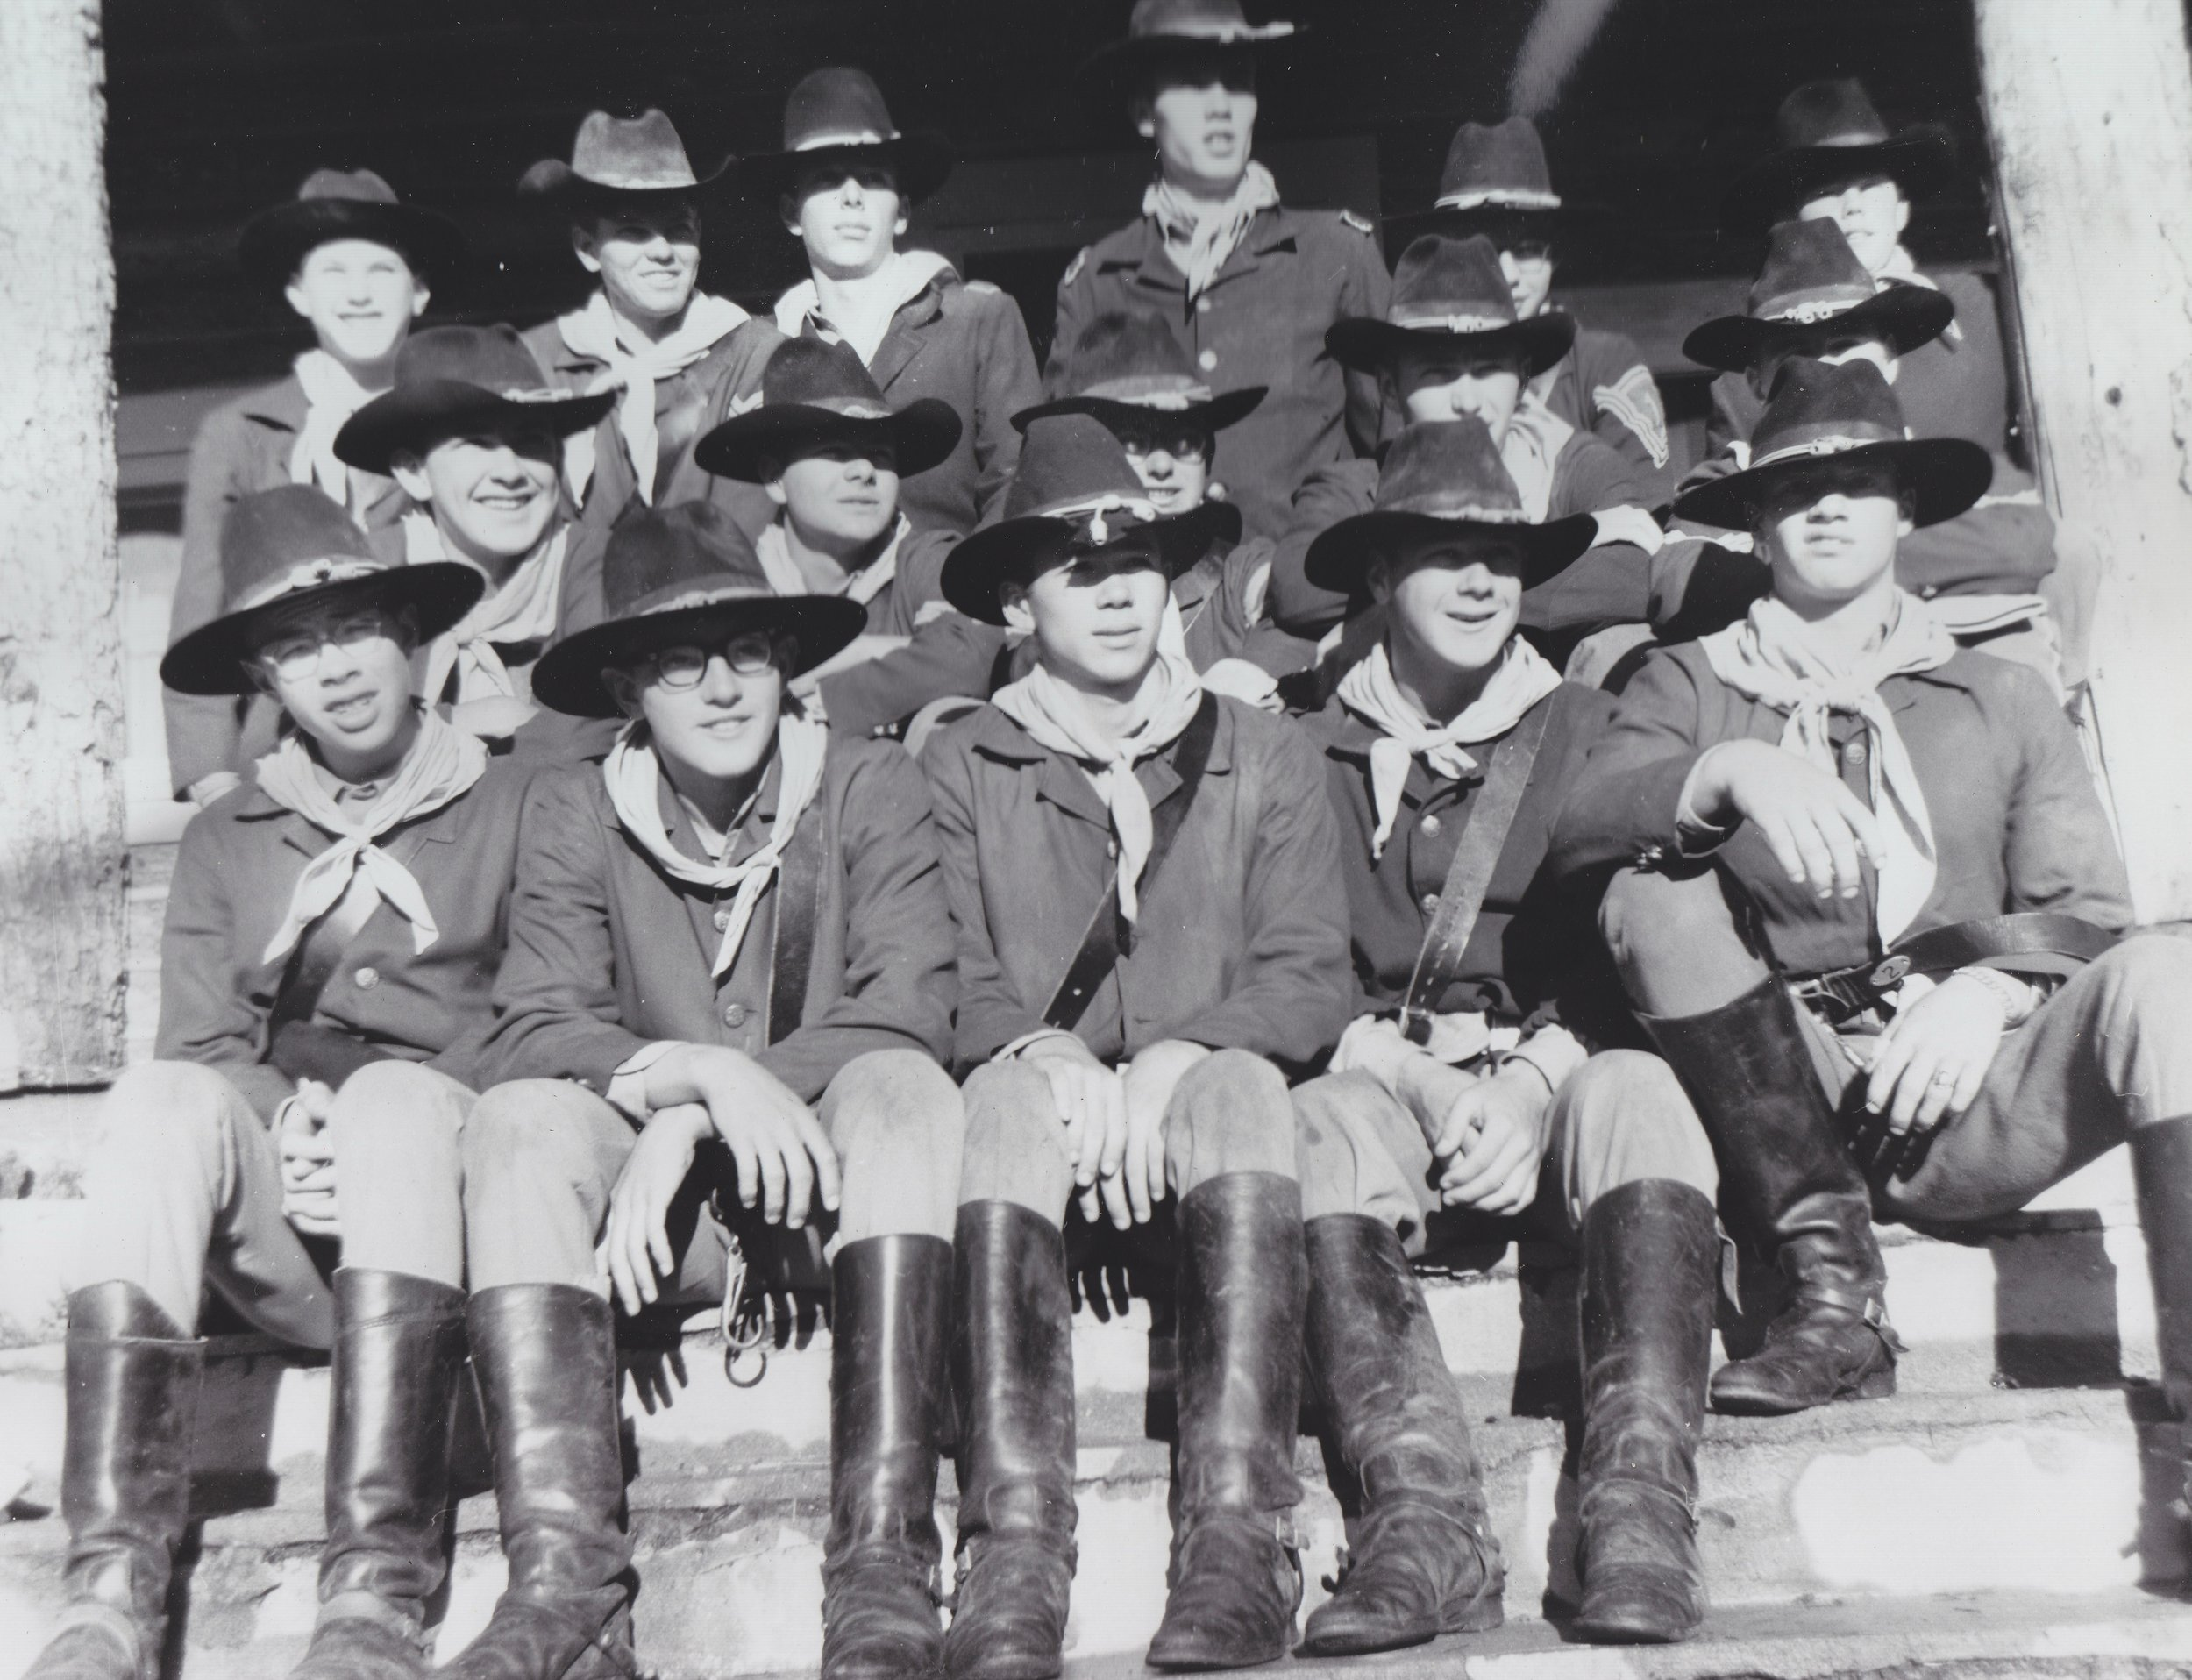 The Westernaires Cavalry team of 1965 credited as cast of the movie  Stagecoach  (1966)